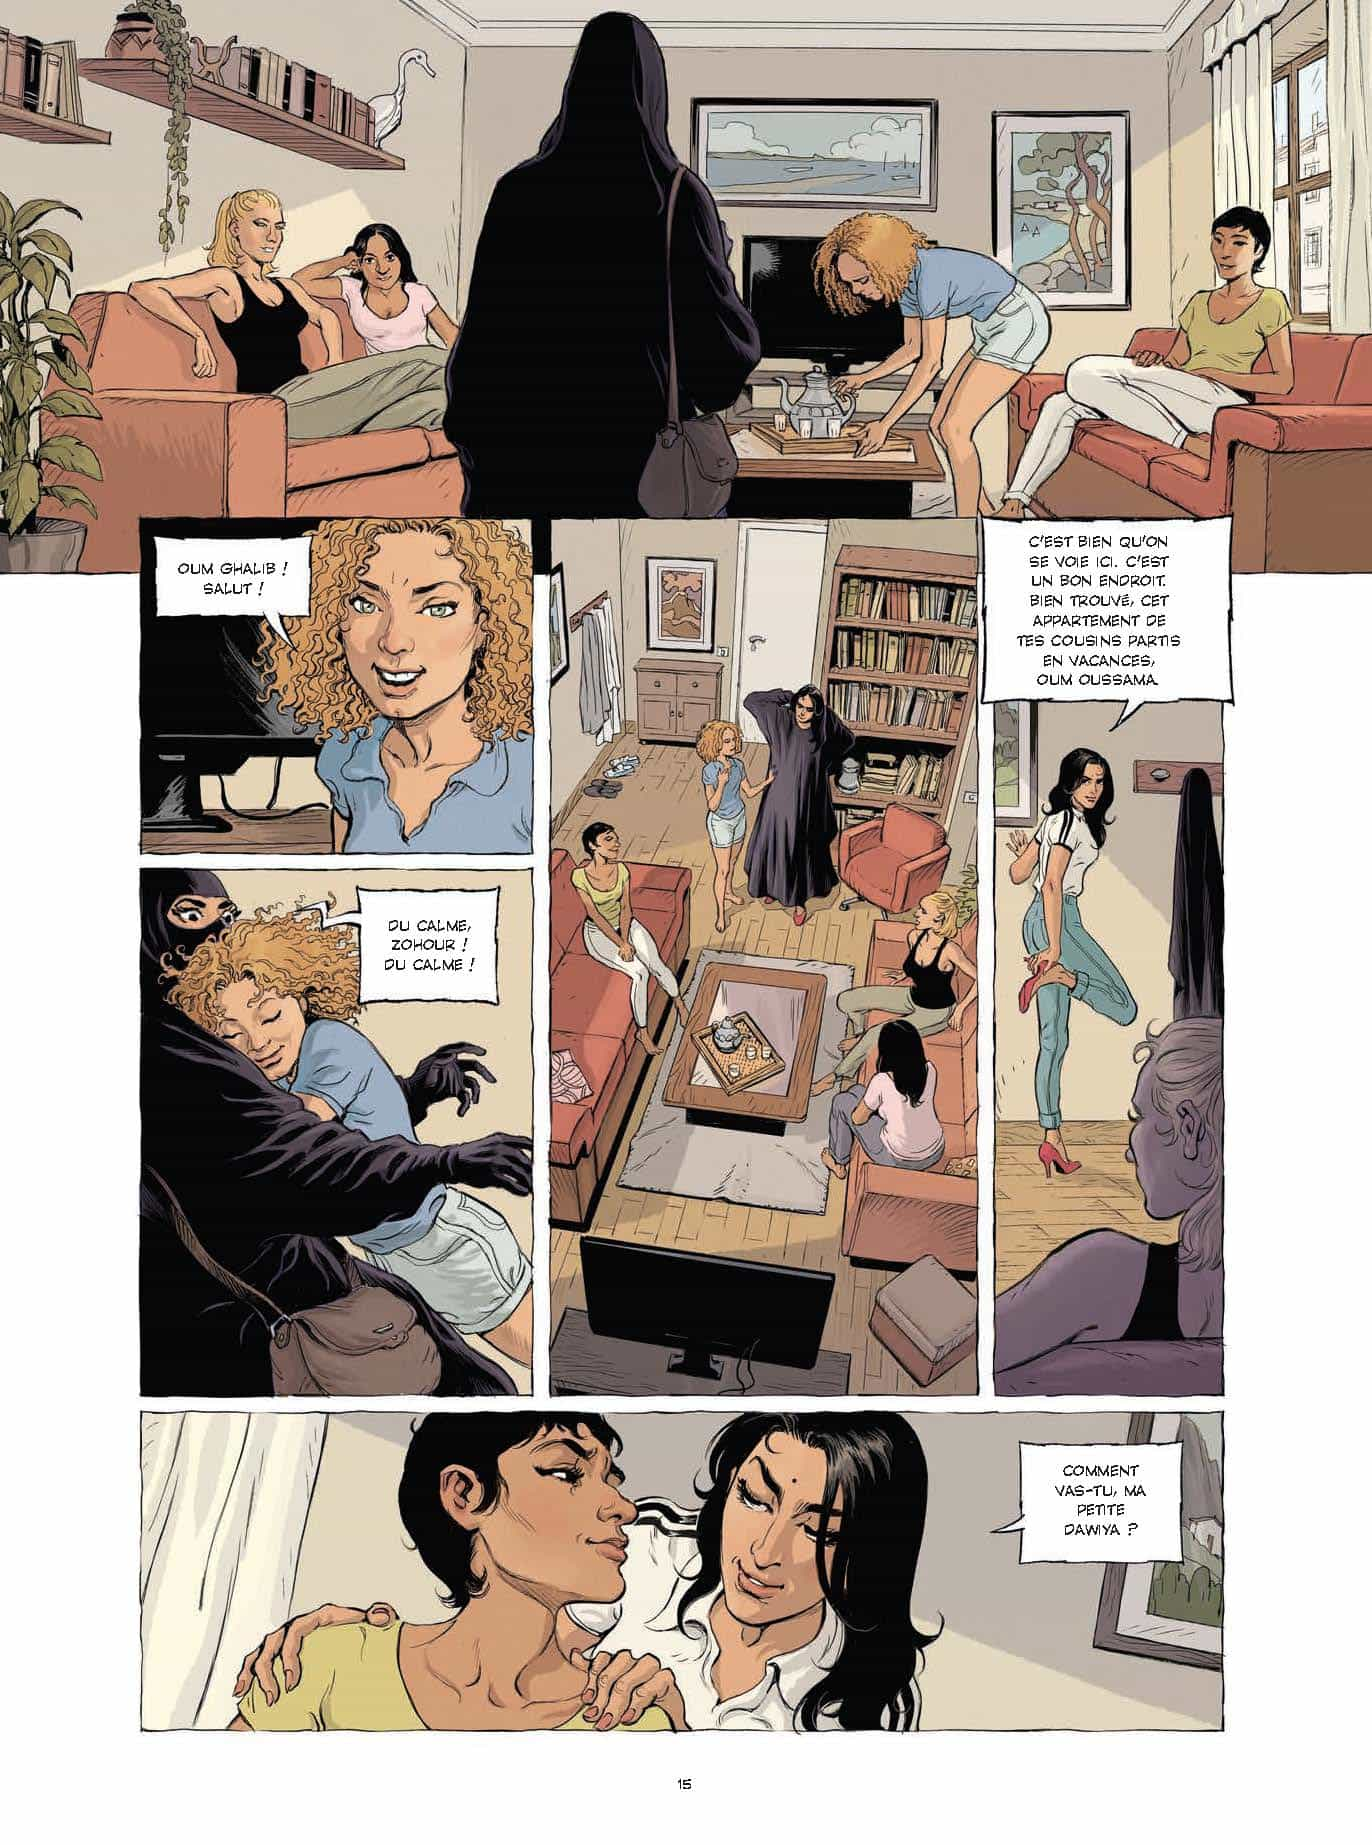 extrait_fiancees_califat_page_4